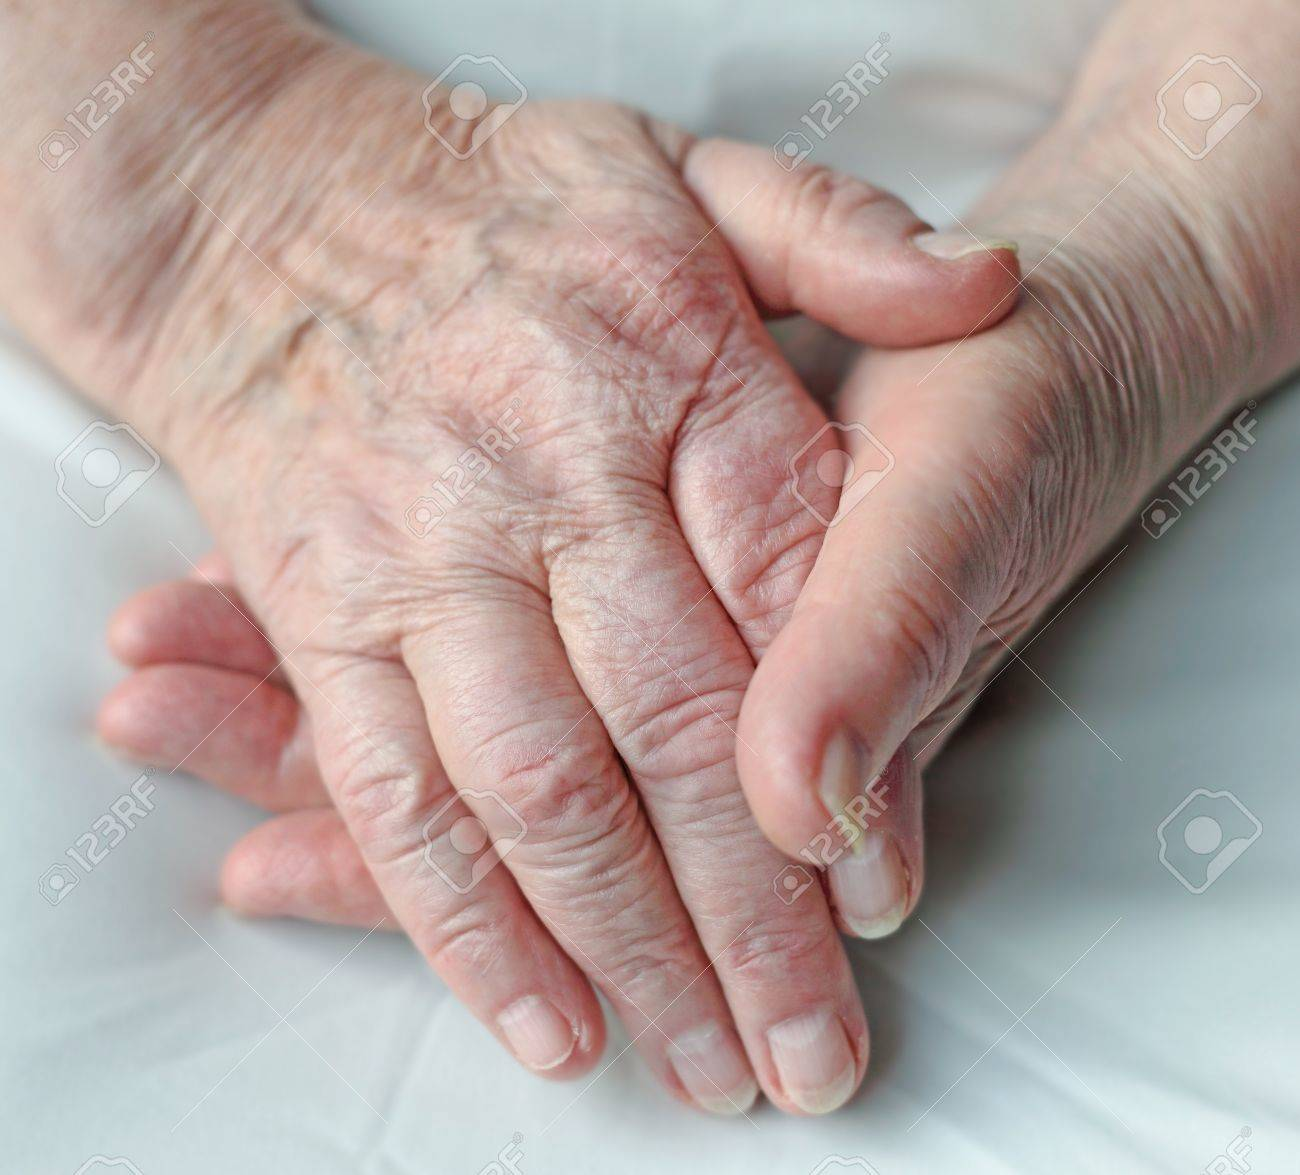 Old wrinkled hands of an elderly person. Stock Photo - 8433590